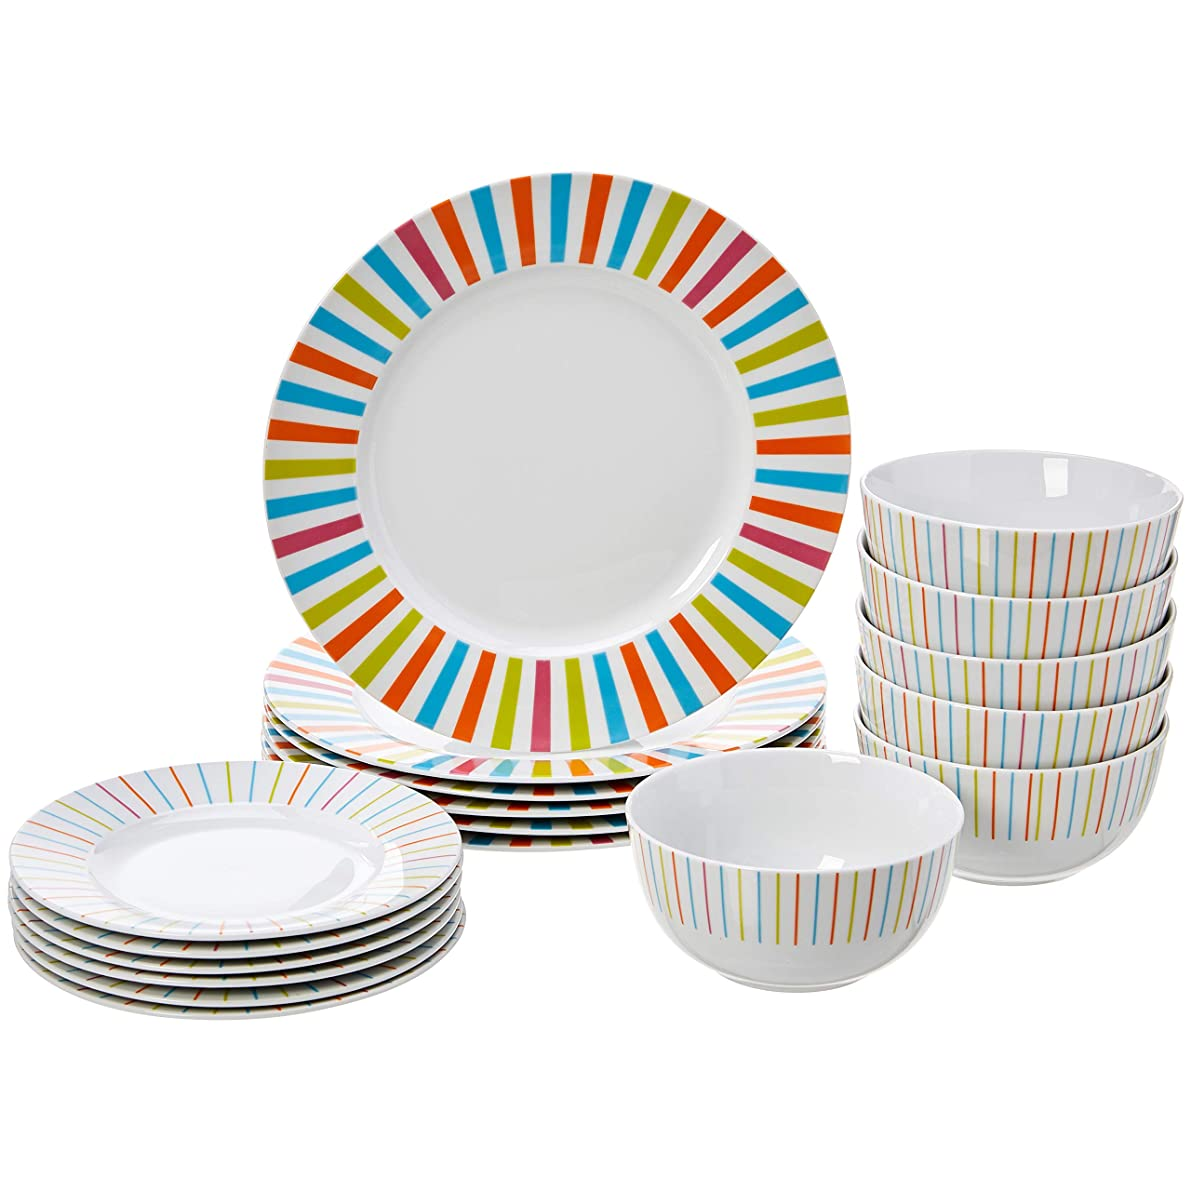 AmazonBasics 18-Piece Dinnerware Set - Sunburst, Service for 6